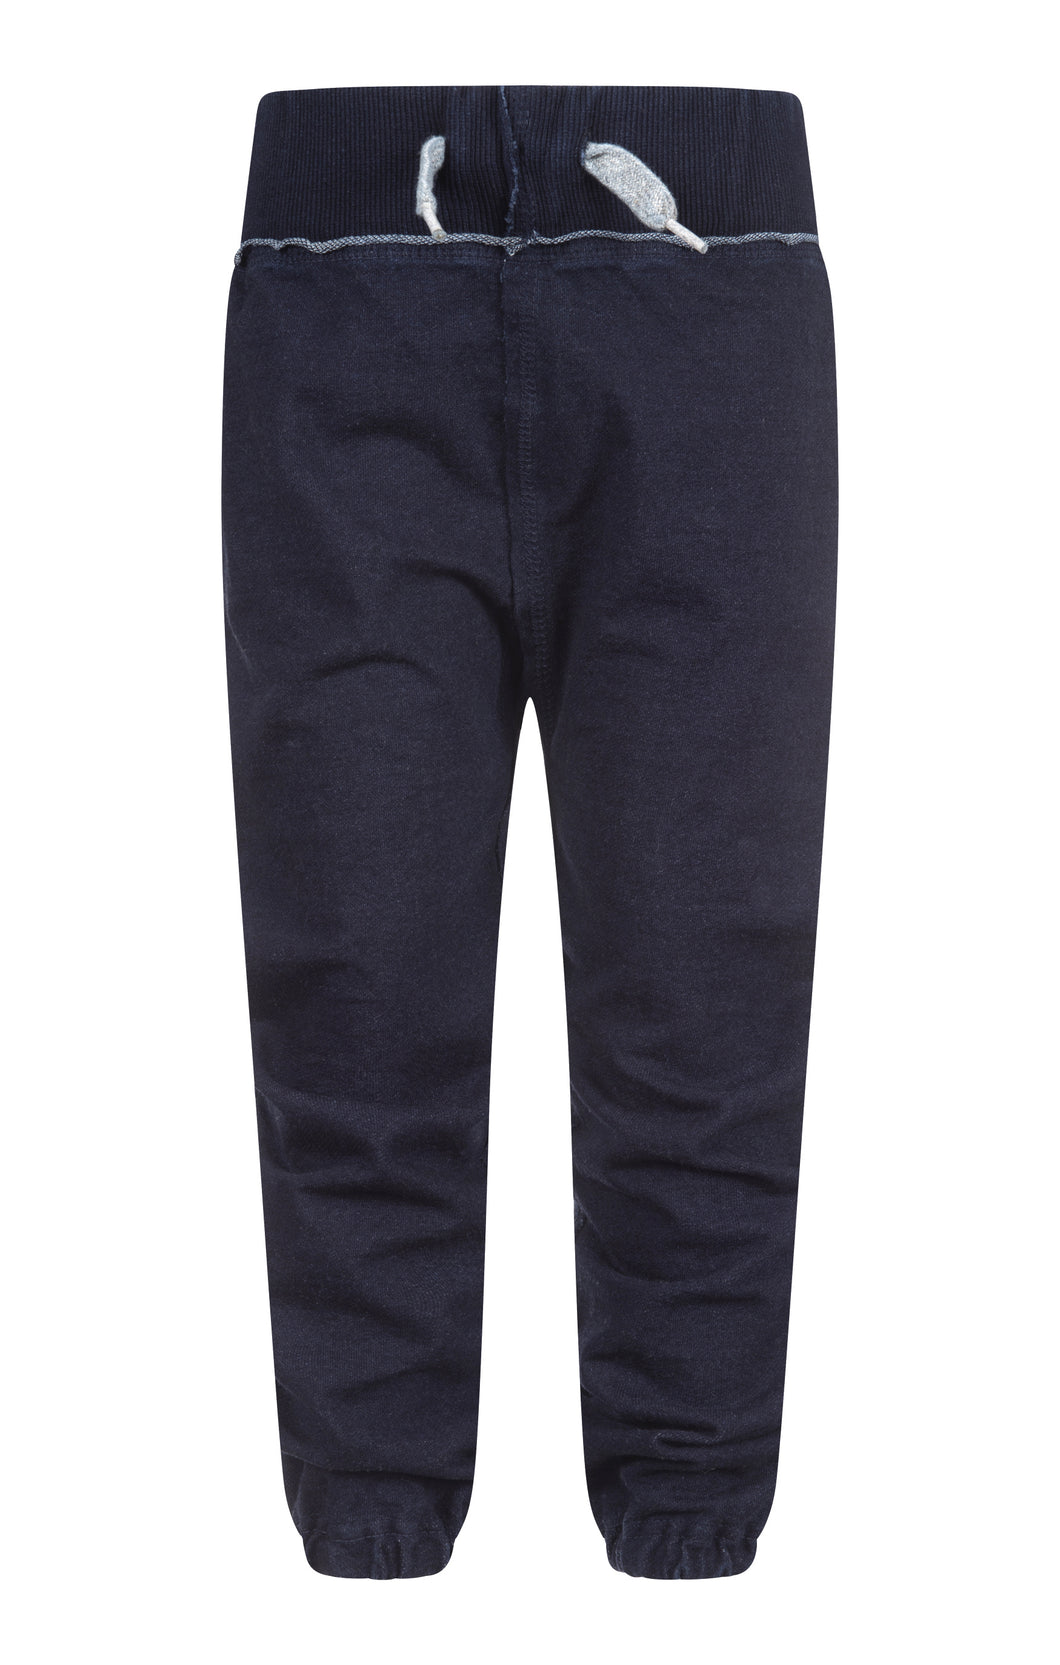 Appaman Gym Sweats (Multiple Colors)